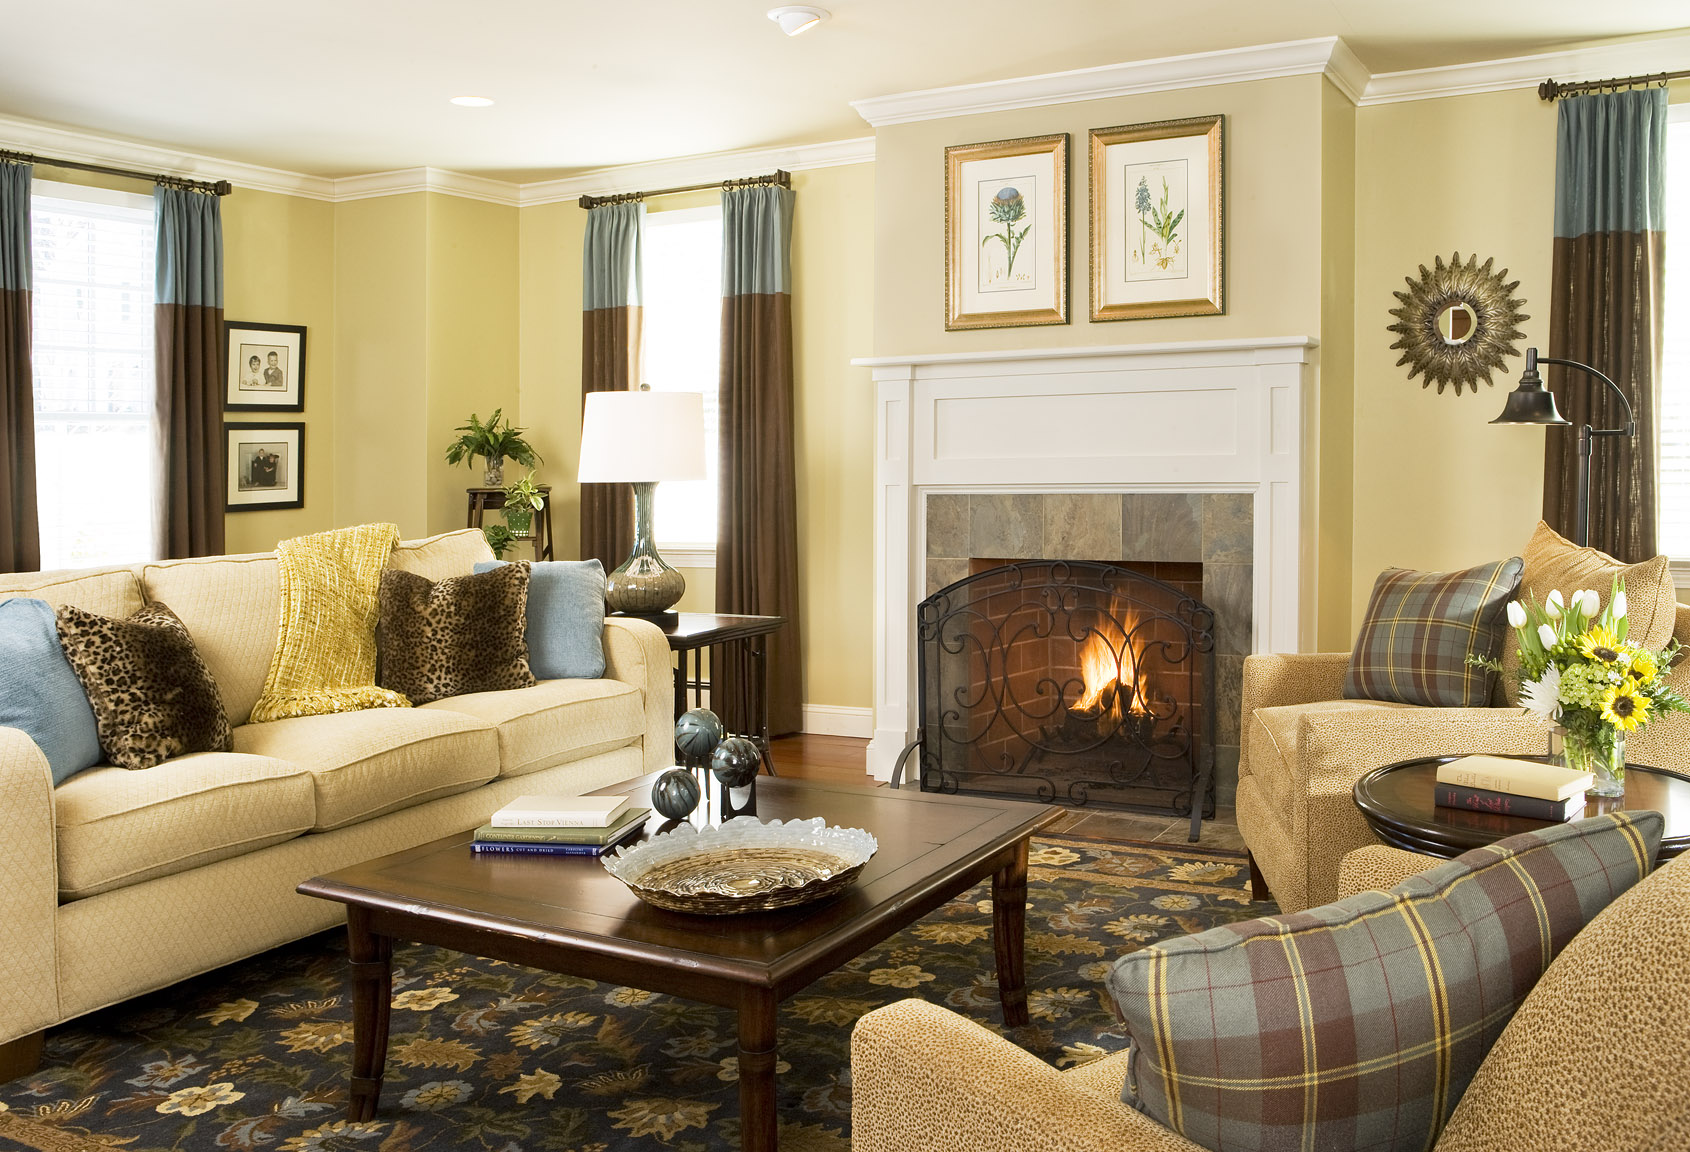 Let s talk color decorating den interiors blog for Yellow living room decorating ideas